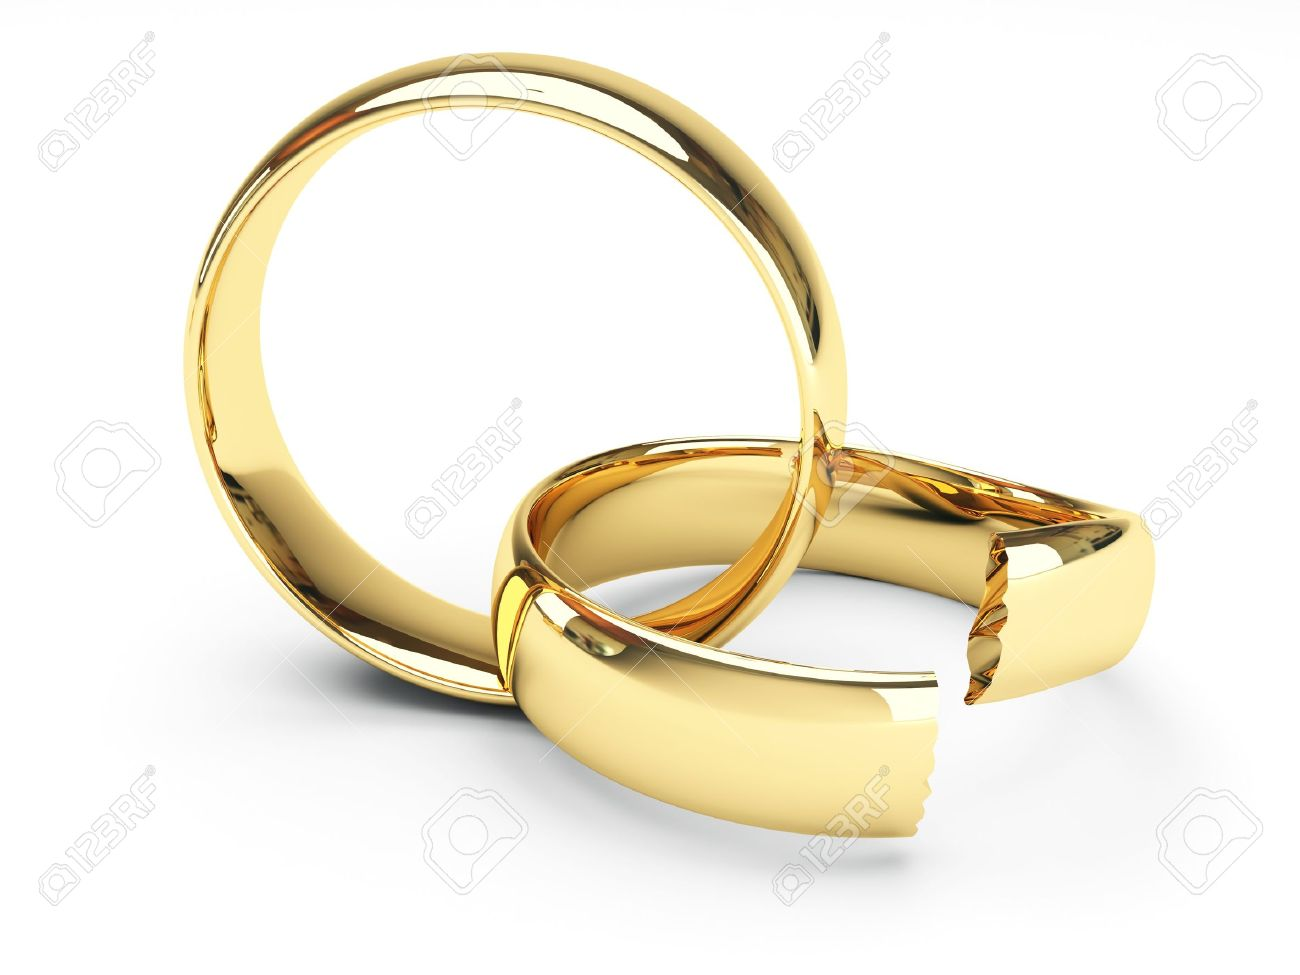 but broken apart images gold is stock photos royalty rings bands one free download wedding cut